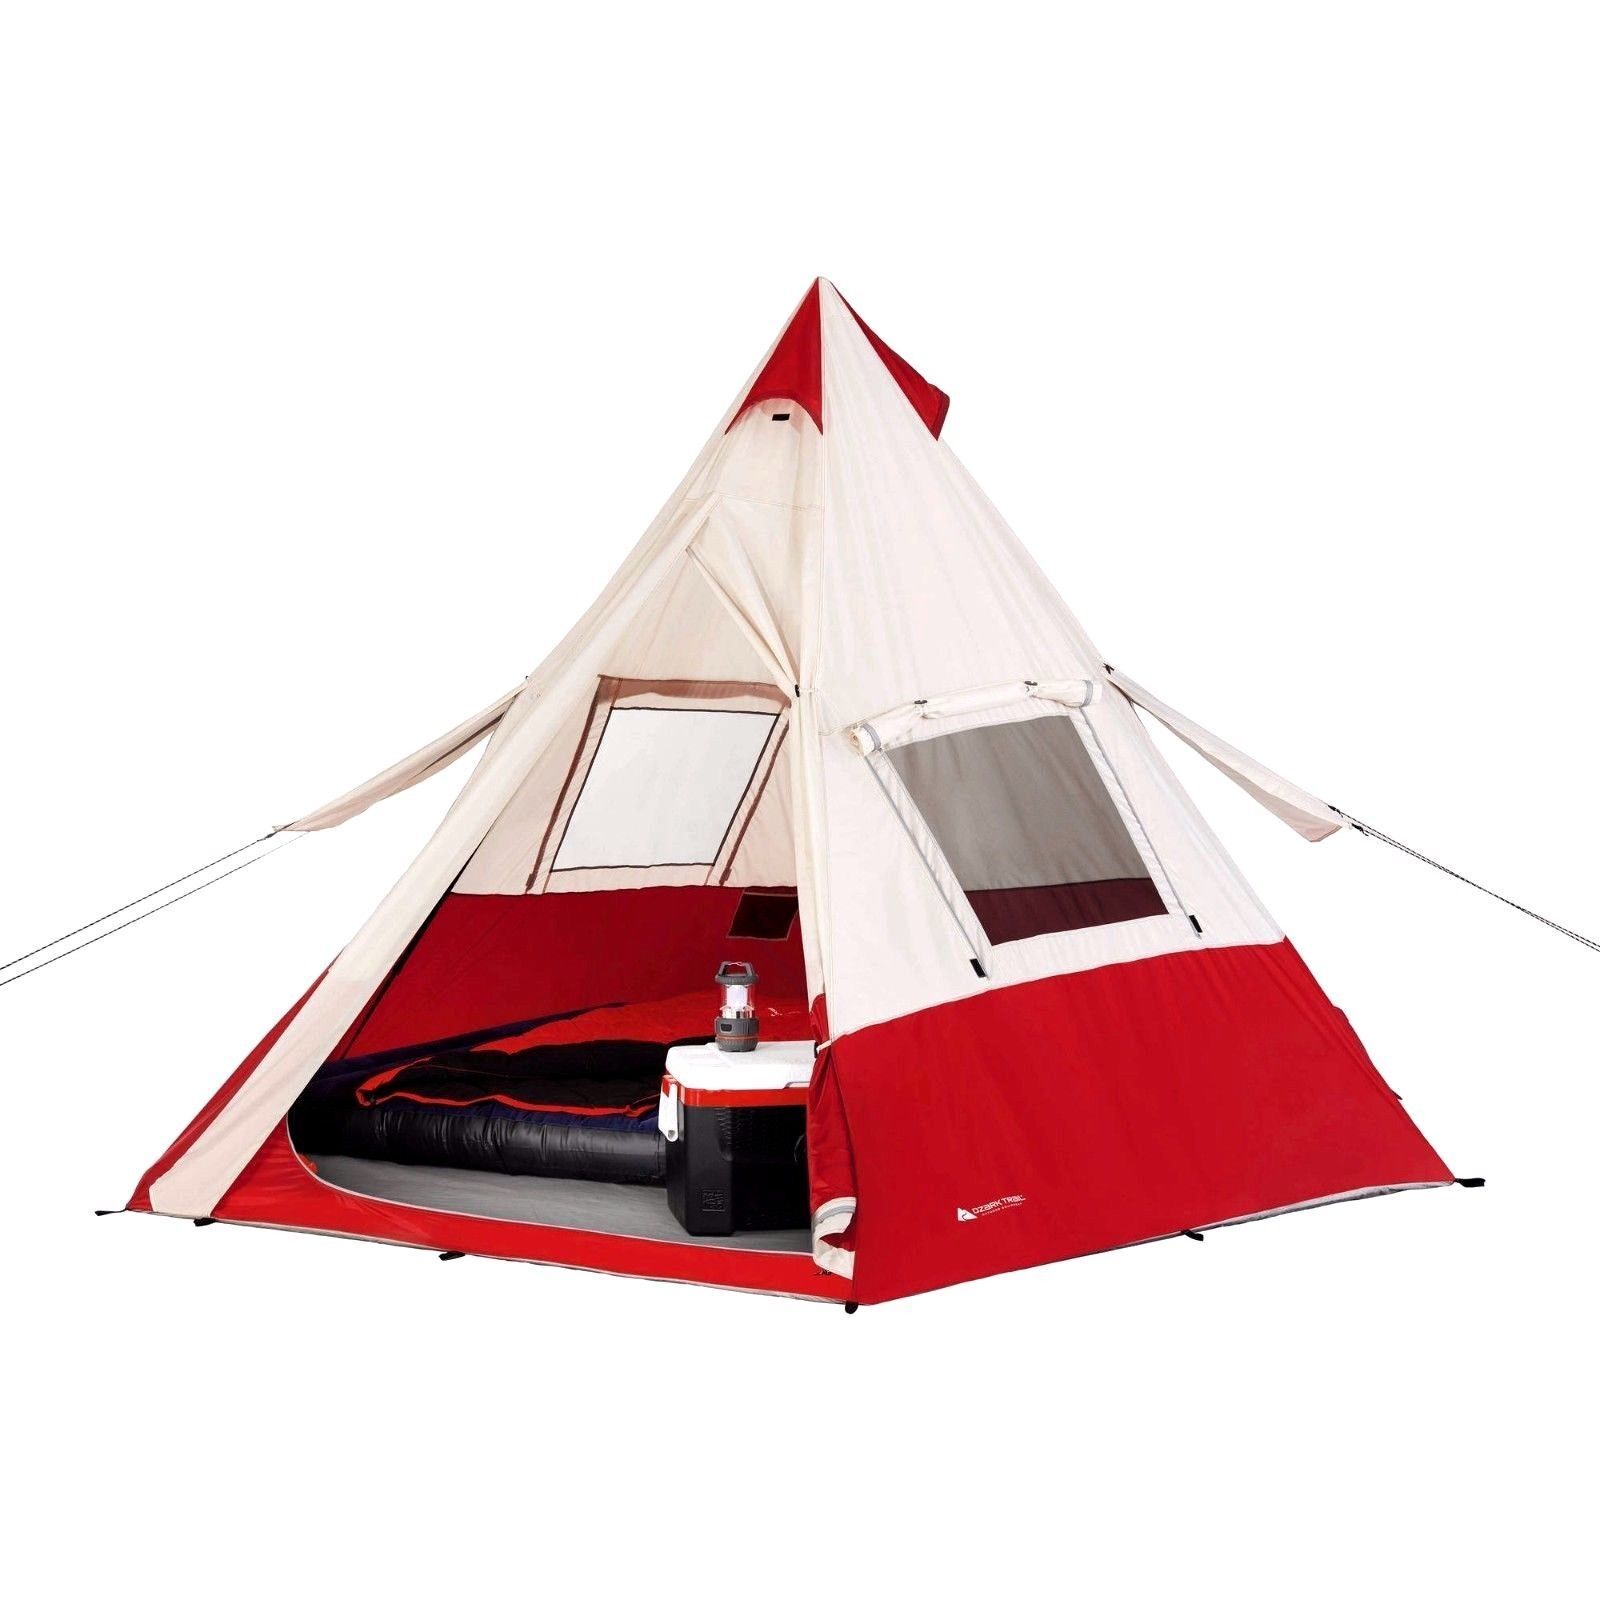 Ozark Trail 7 Person Teepee Tent W  sc 1 st  eBay & Portable Teepee Tent Ozark Trail 7 People Easy Set up Camping ...